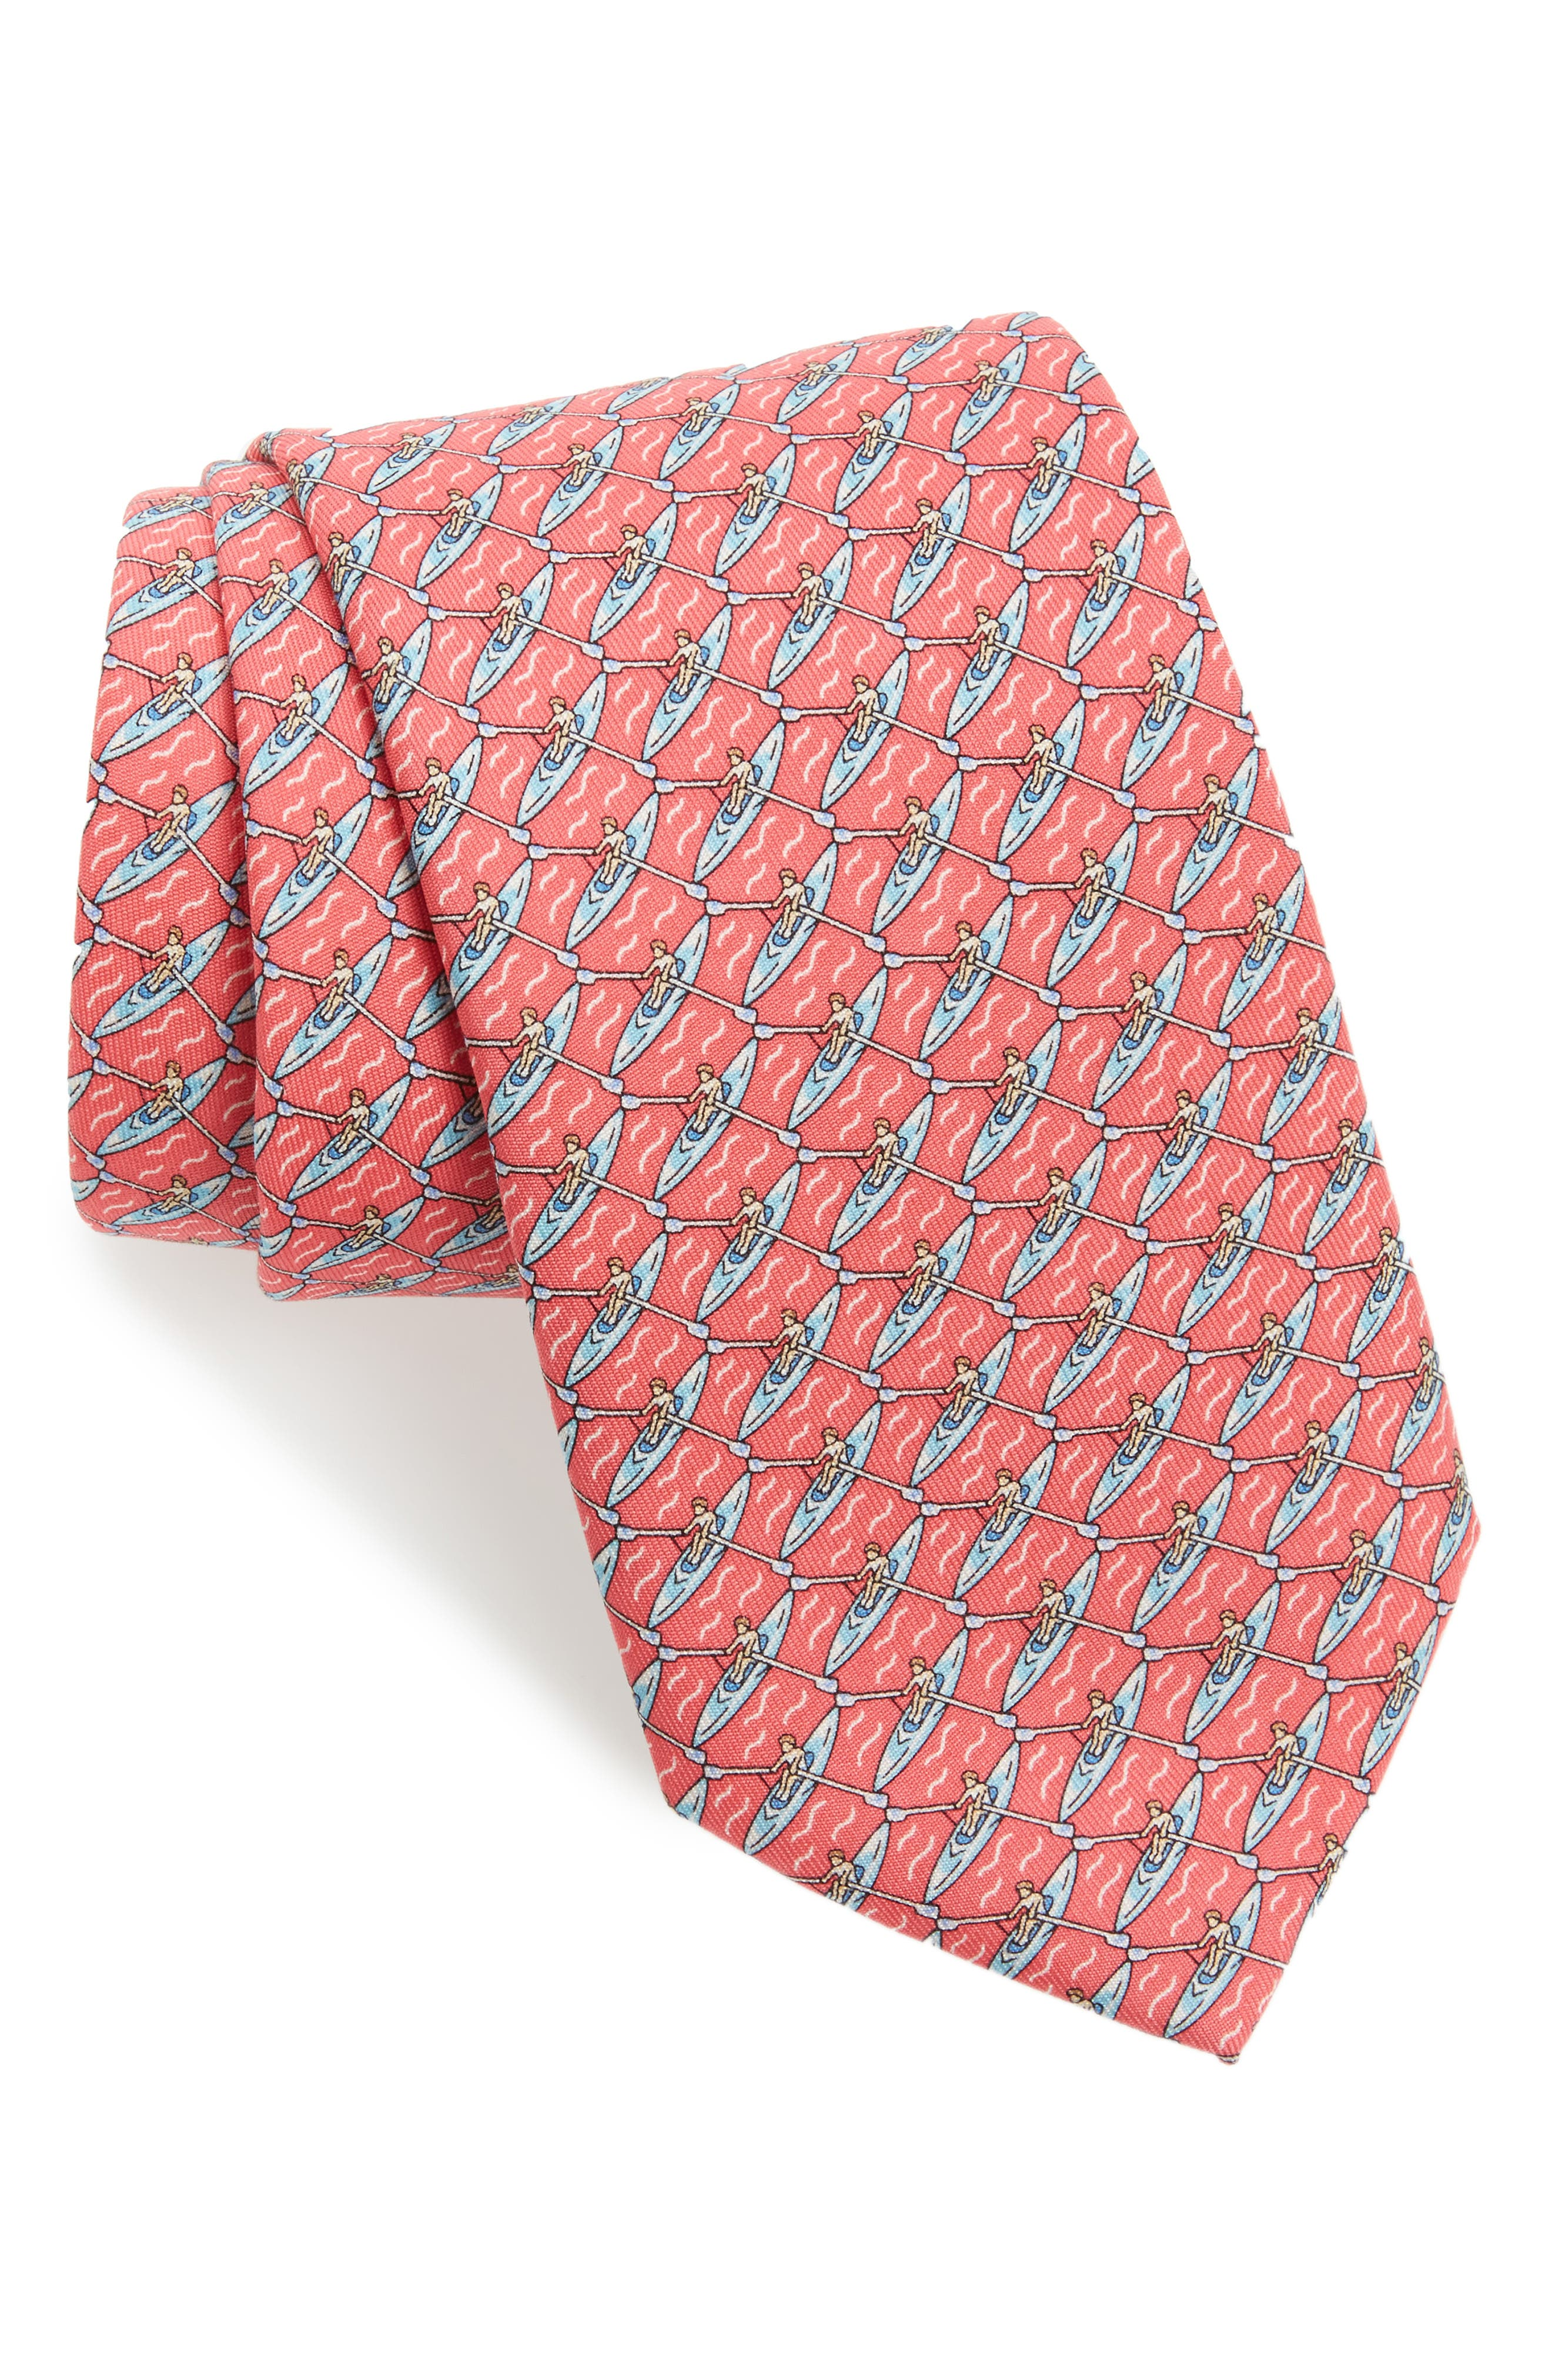 Main Image - vineyard vines Rowing Silk Tie